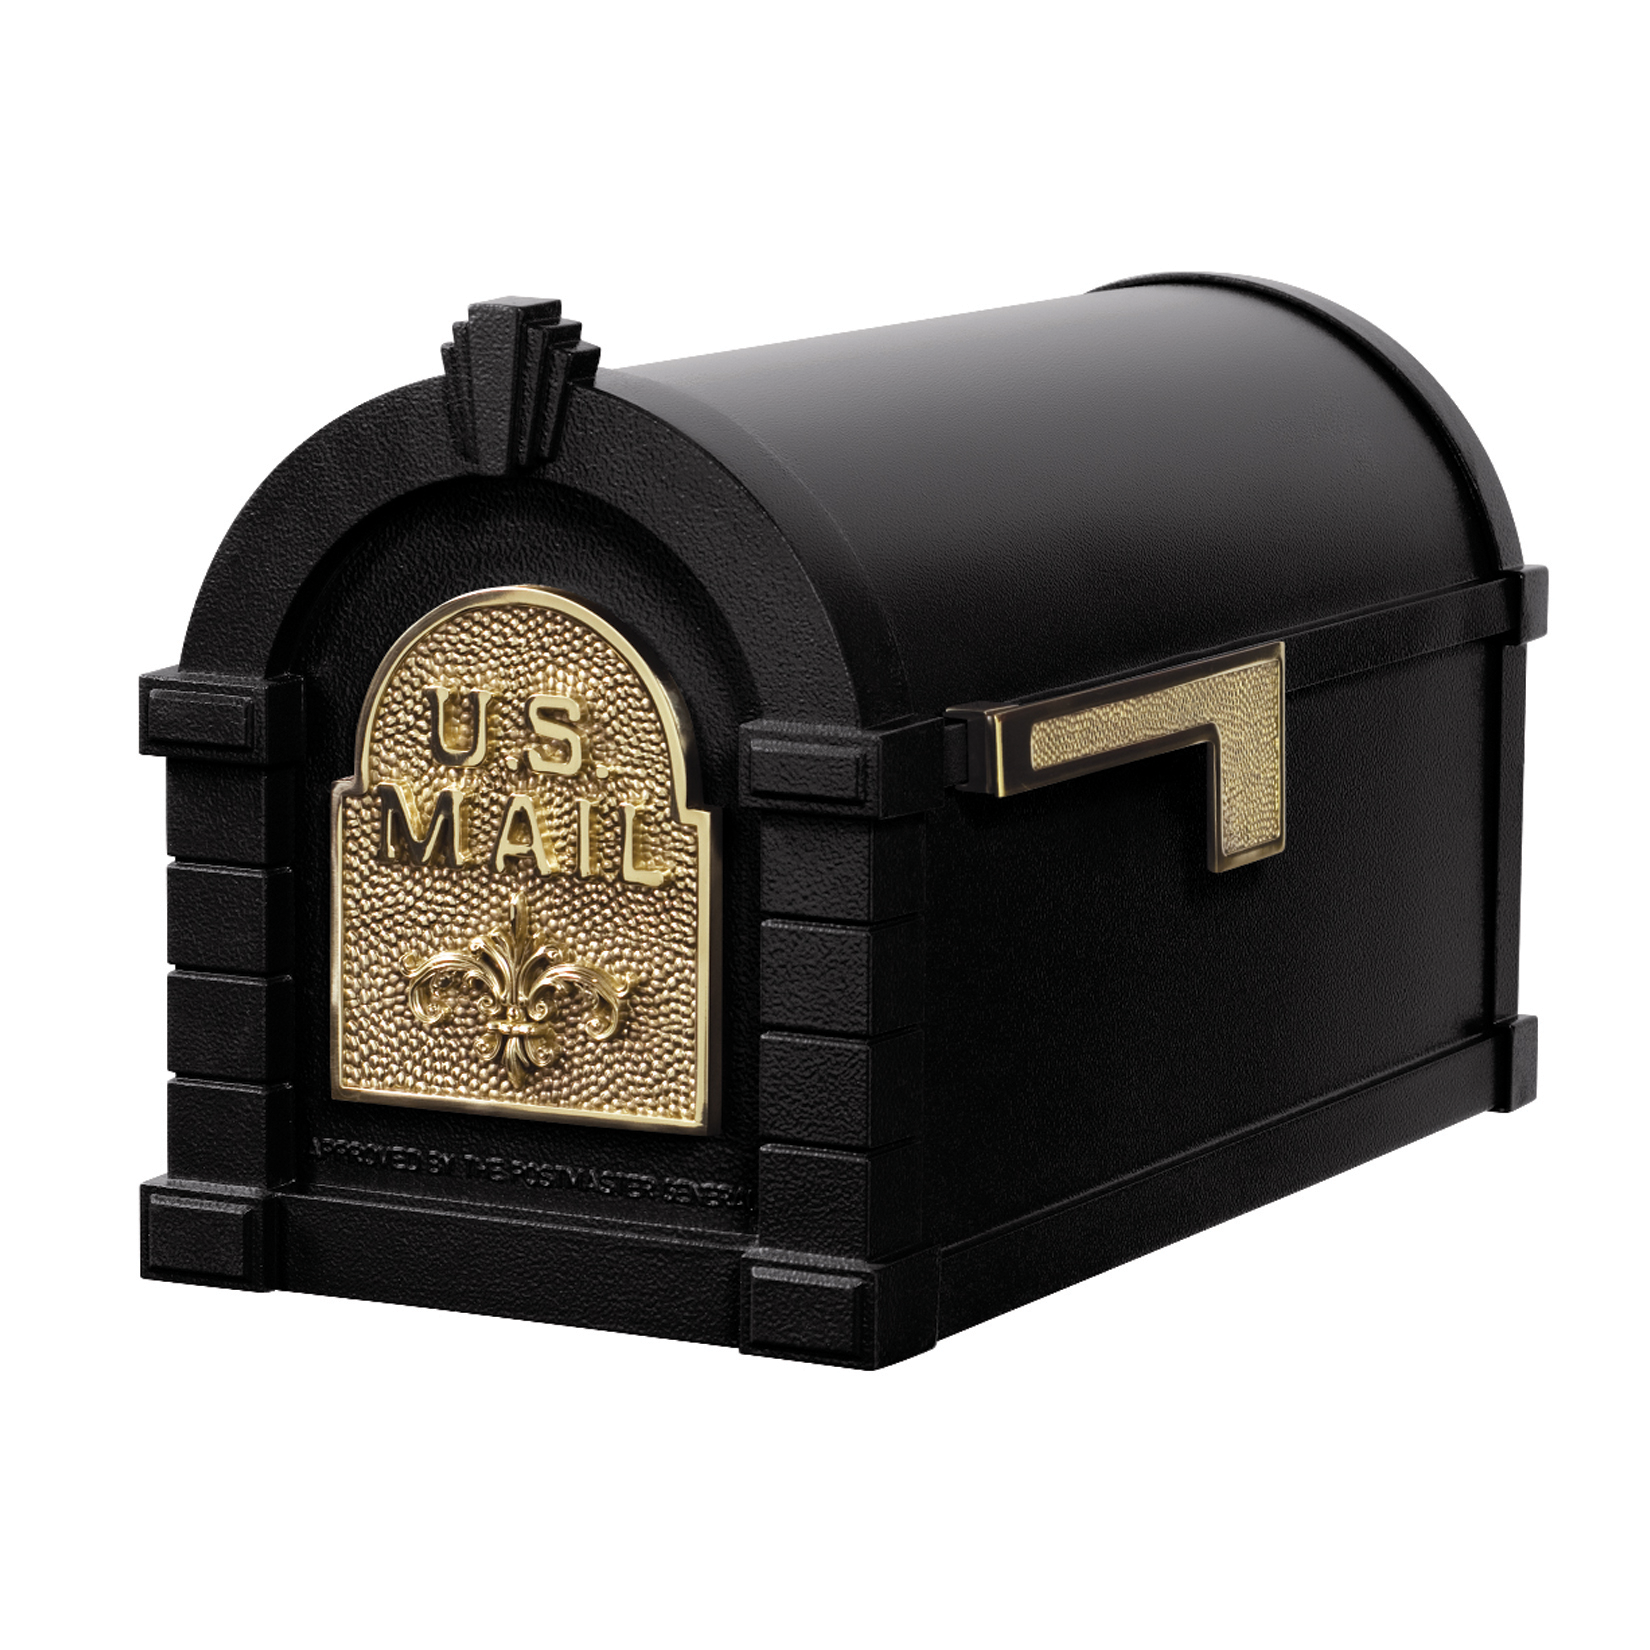 Gaines Fleur De Lis Keystone Mailboxes<br />Black with Polished Brass